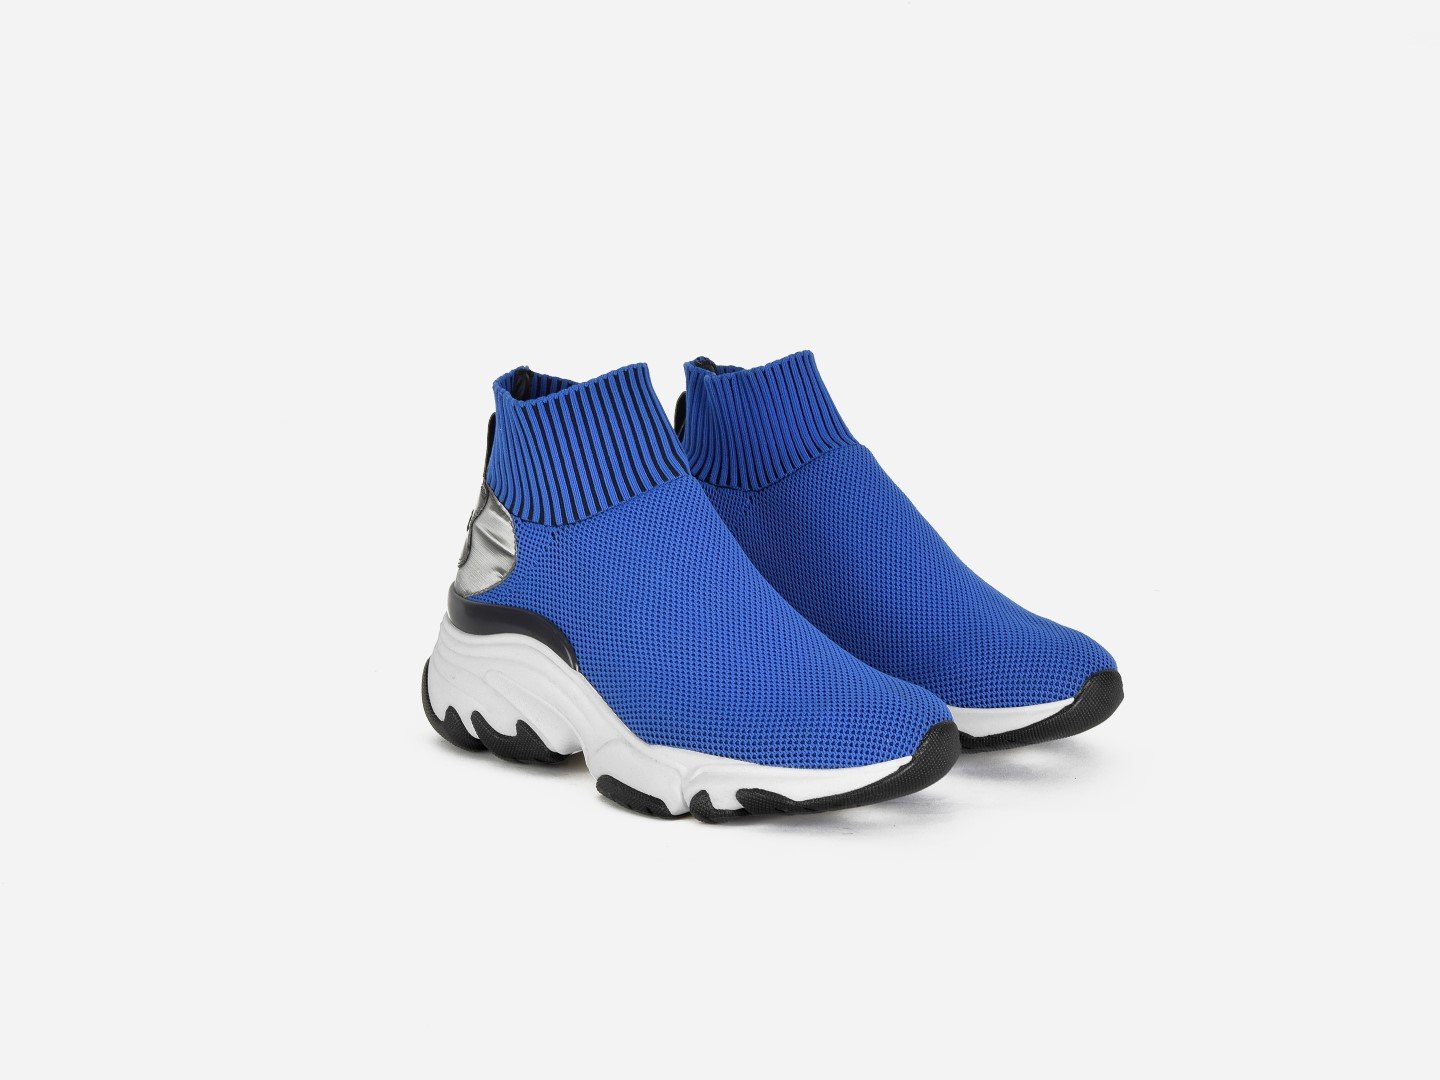 pregis ryder blue sock oversized runner sneaker designed in London